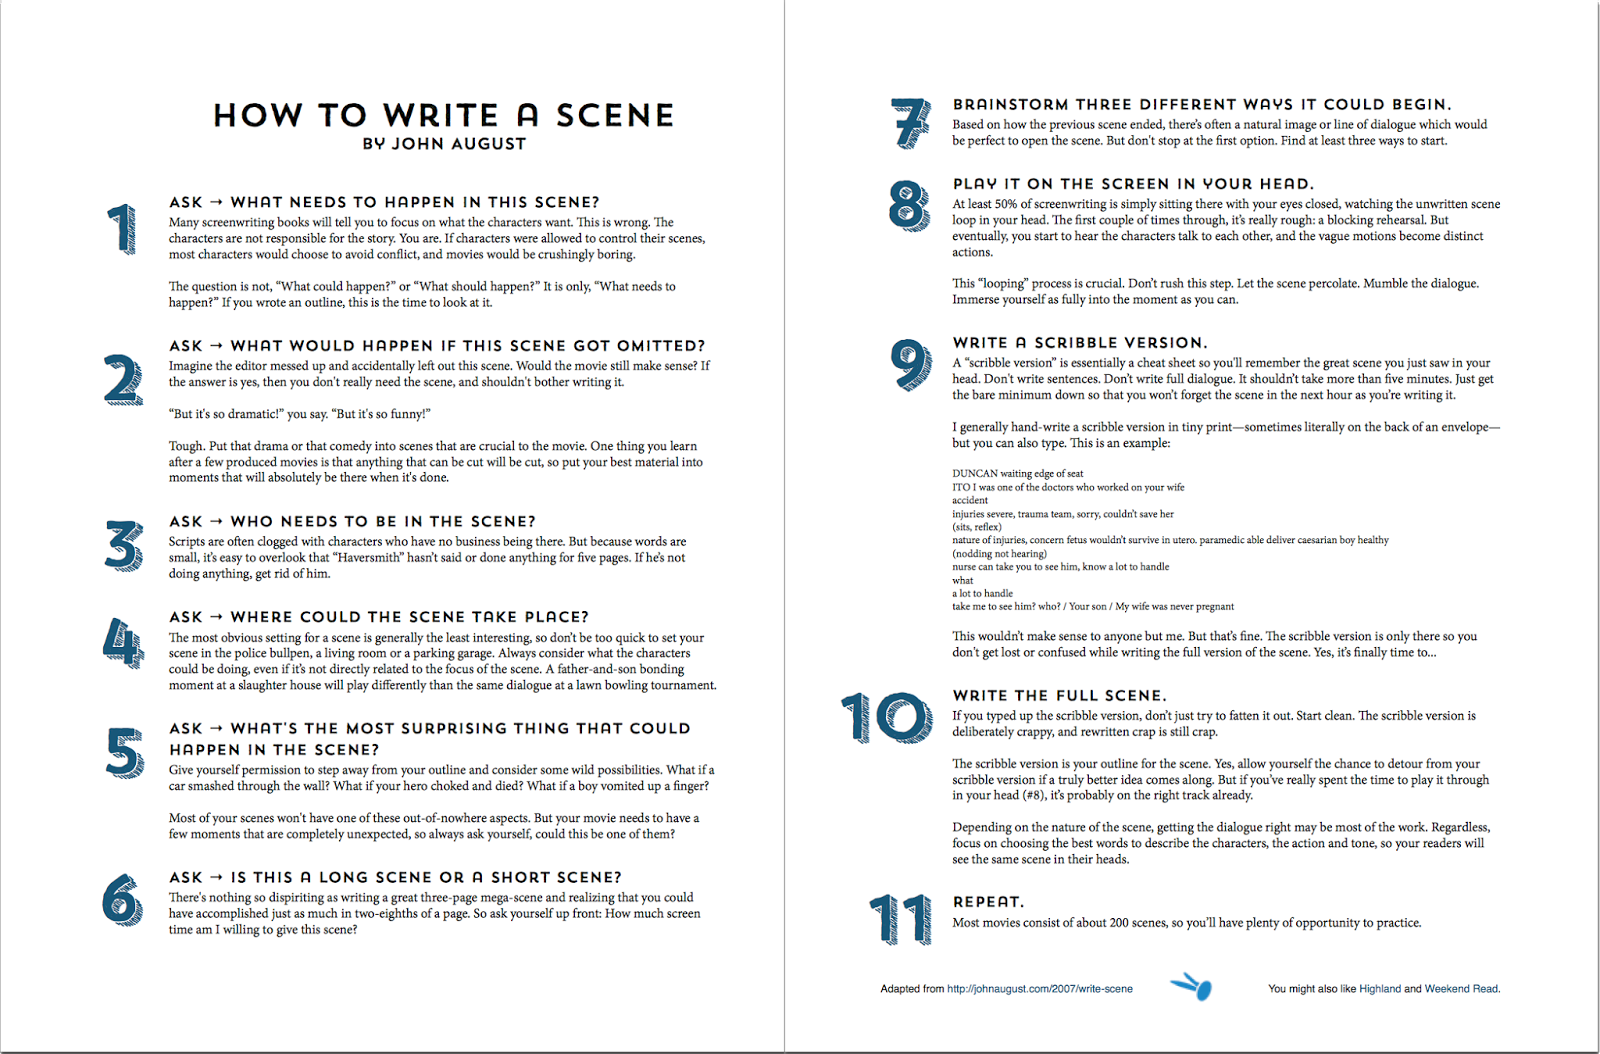 http://johnaugust.com/wp-content/uploads/2014/06/how-to-write-a-scene.pdf